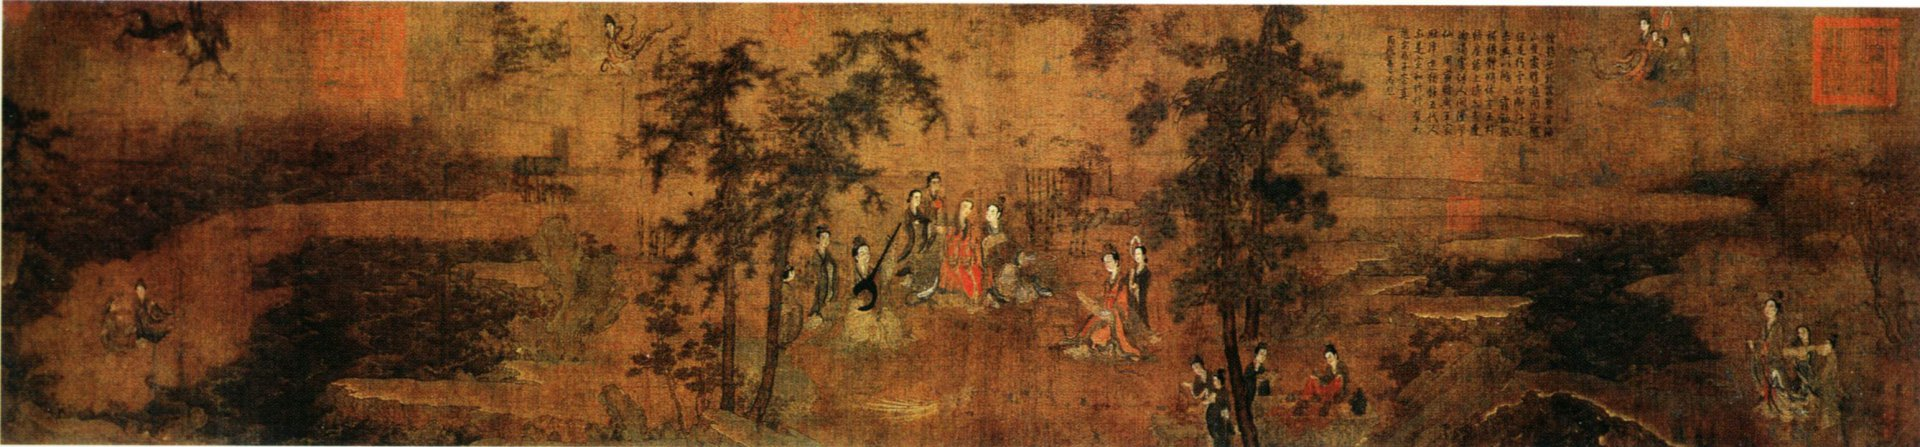 Жуань Гао078_1c0093a.Ancient_Chinese_Painting.jpg